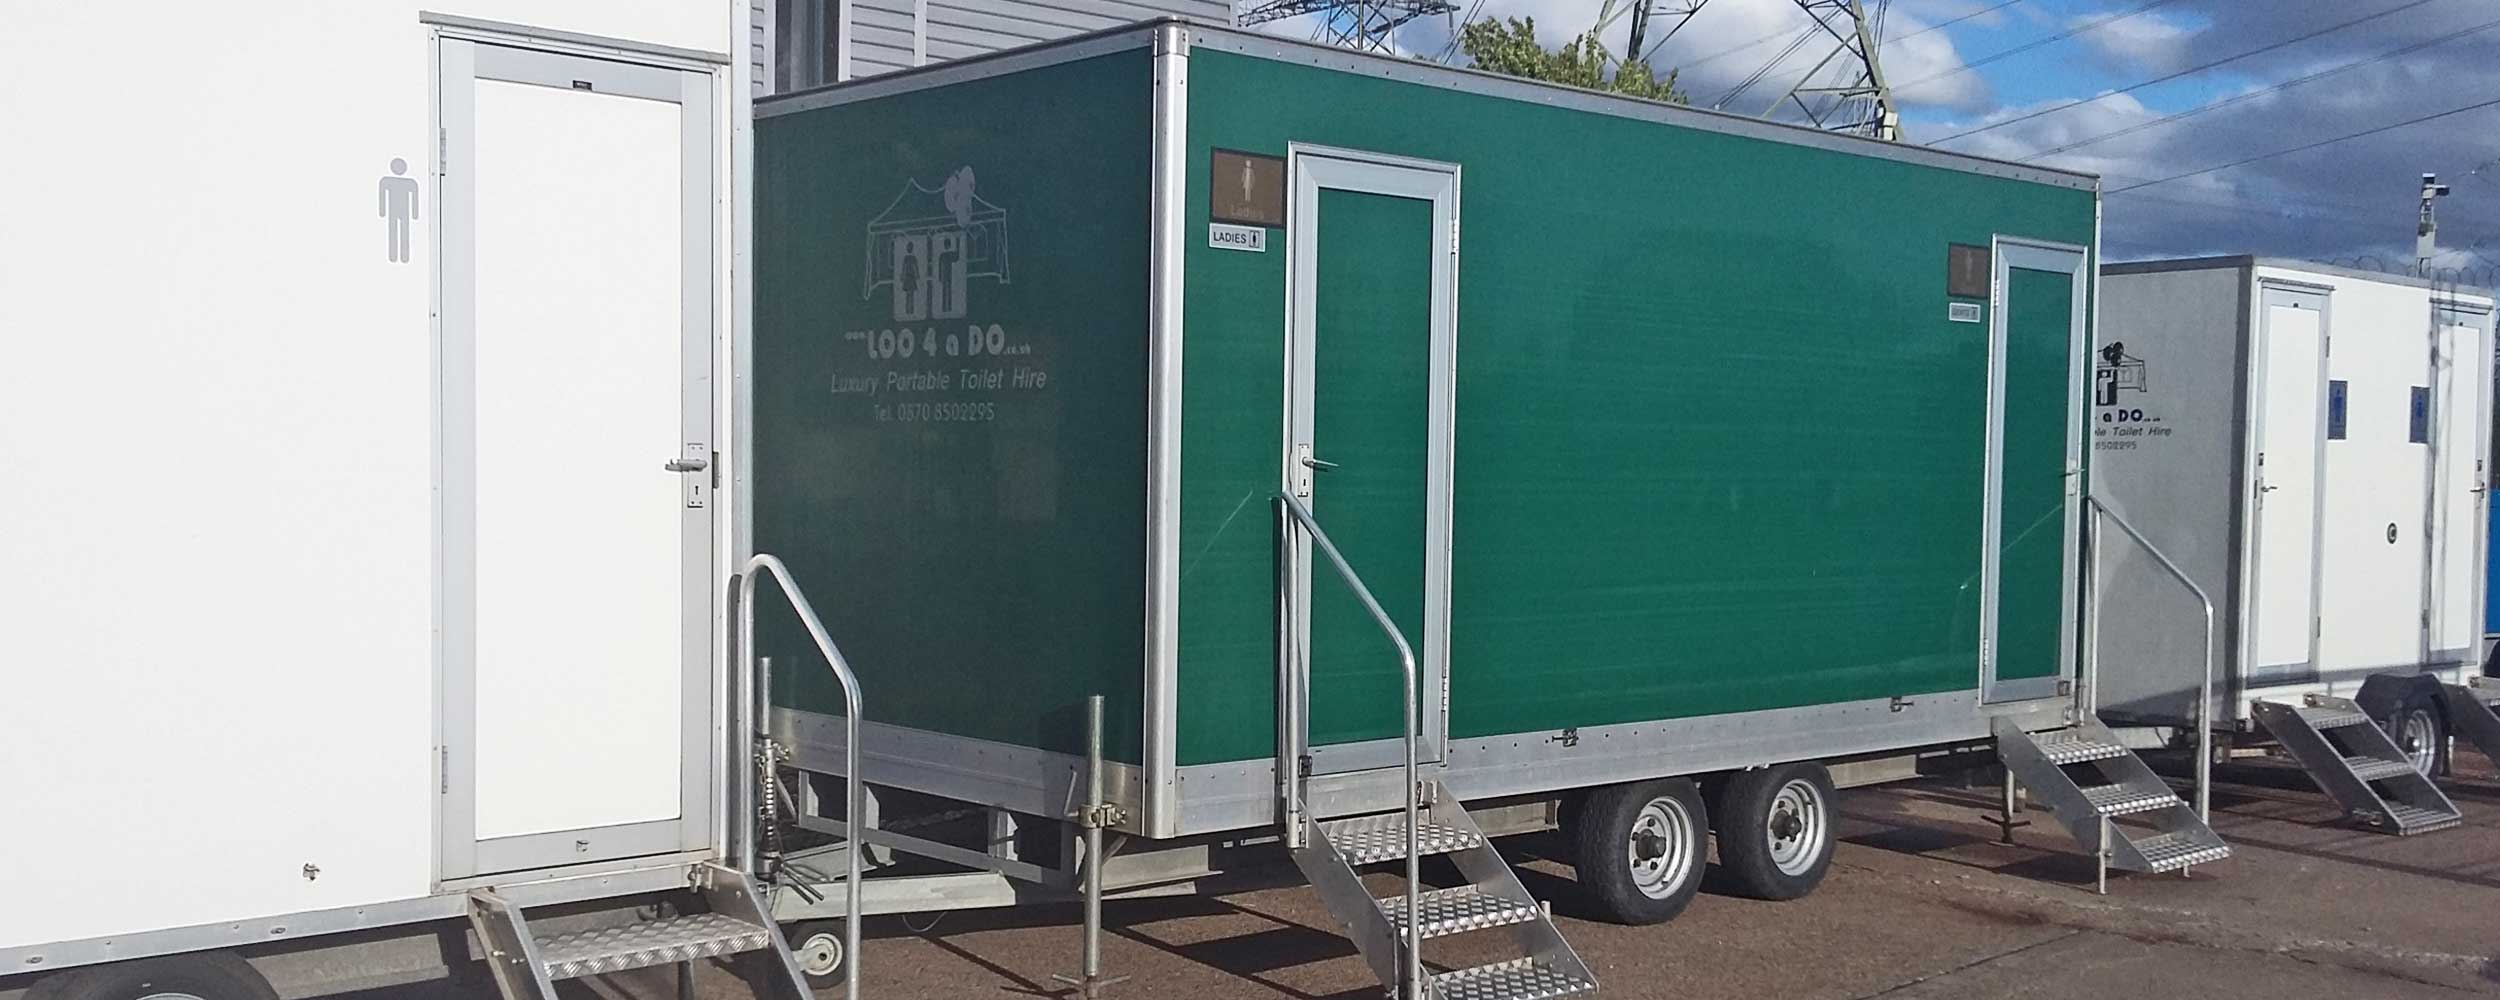 bathroom features elegance septic our img in one series elegant top toilets portable a trailers line units of the except all large restrooms clinkscales for enjoy is stall restroom mobile service